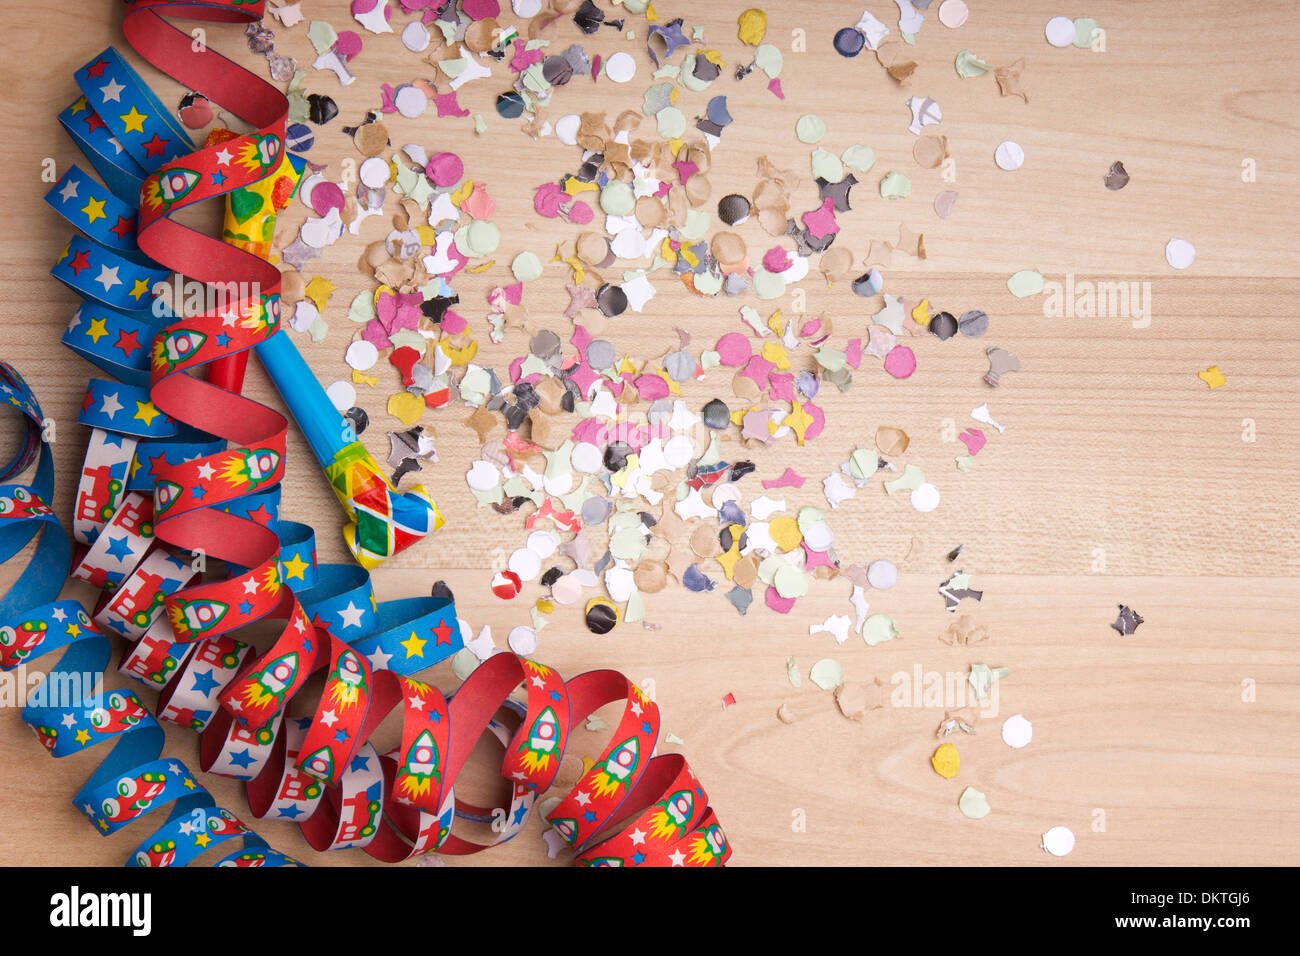 streamers and confetti as decoration for parties, sylvester with wooden background Stock Photo